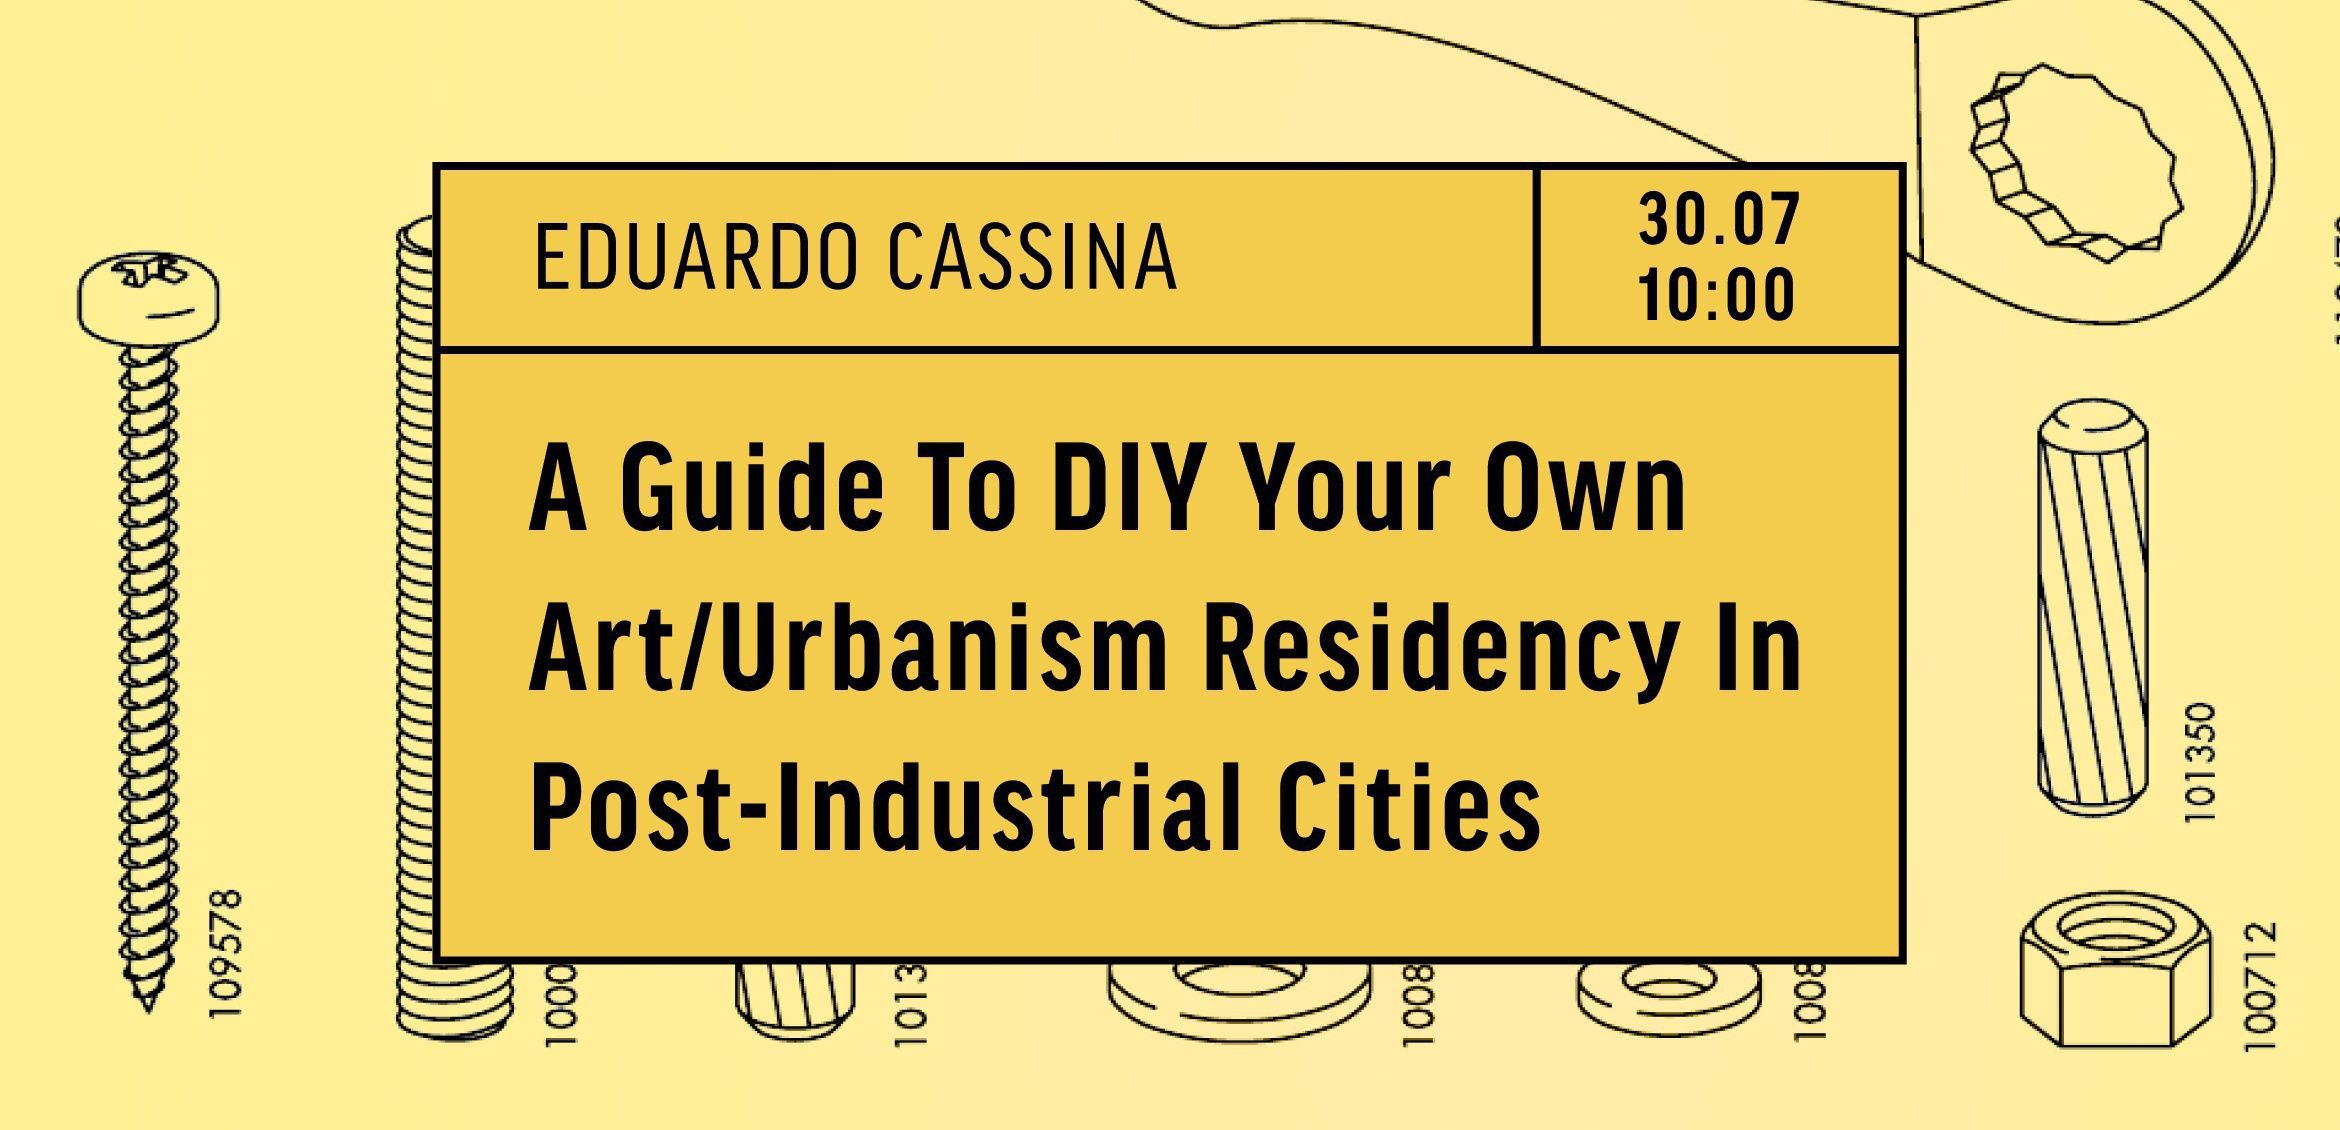 TO RESIDENCY: a guide to DIY your own art/urbanism residency in post-industrial cities